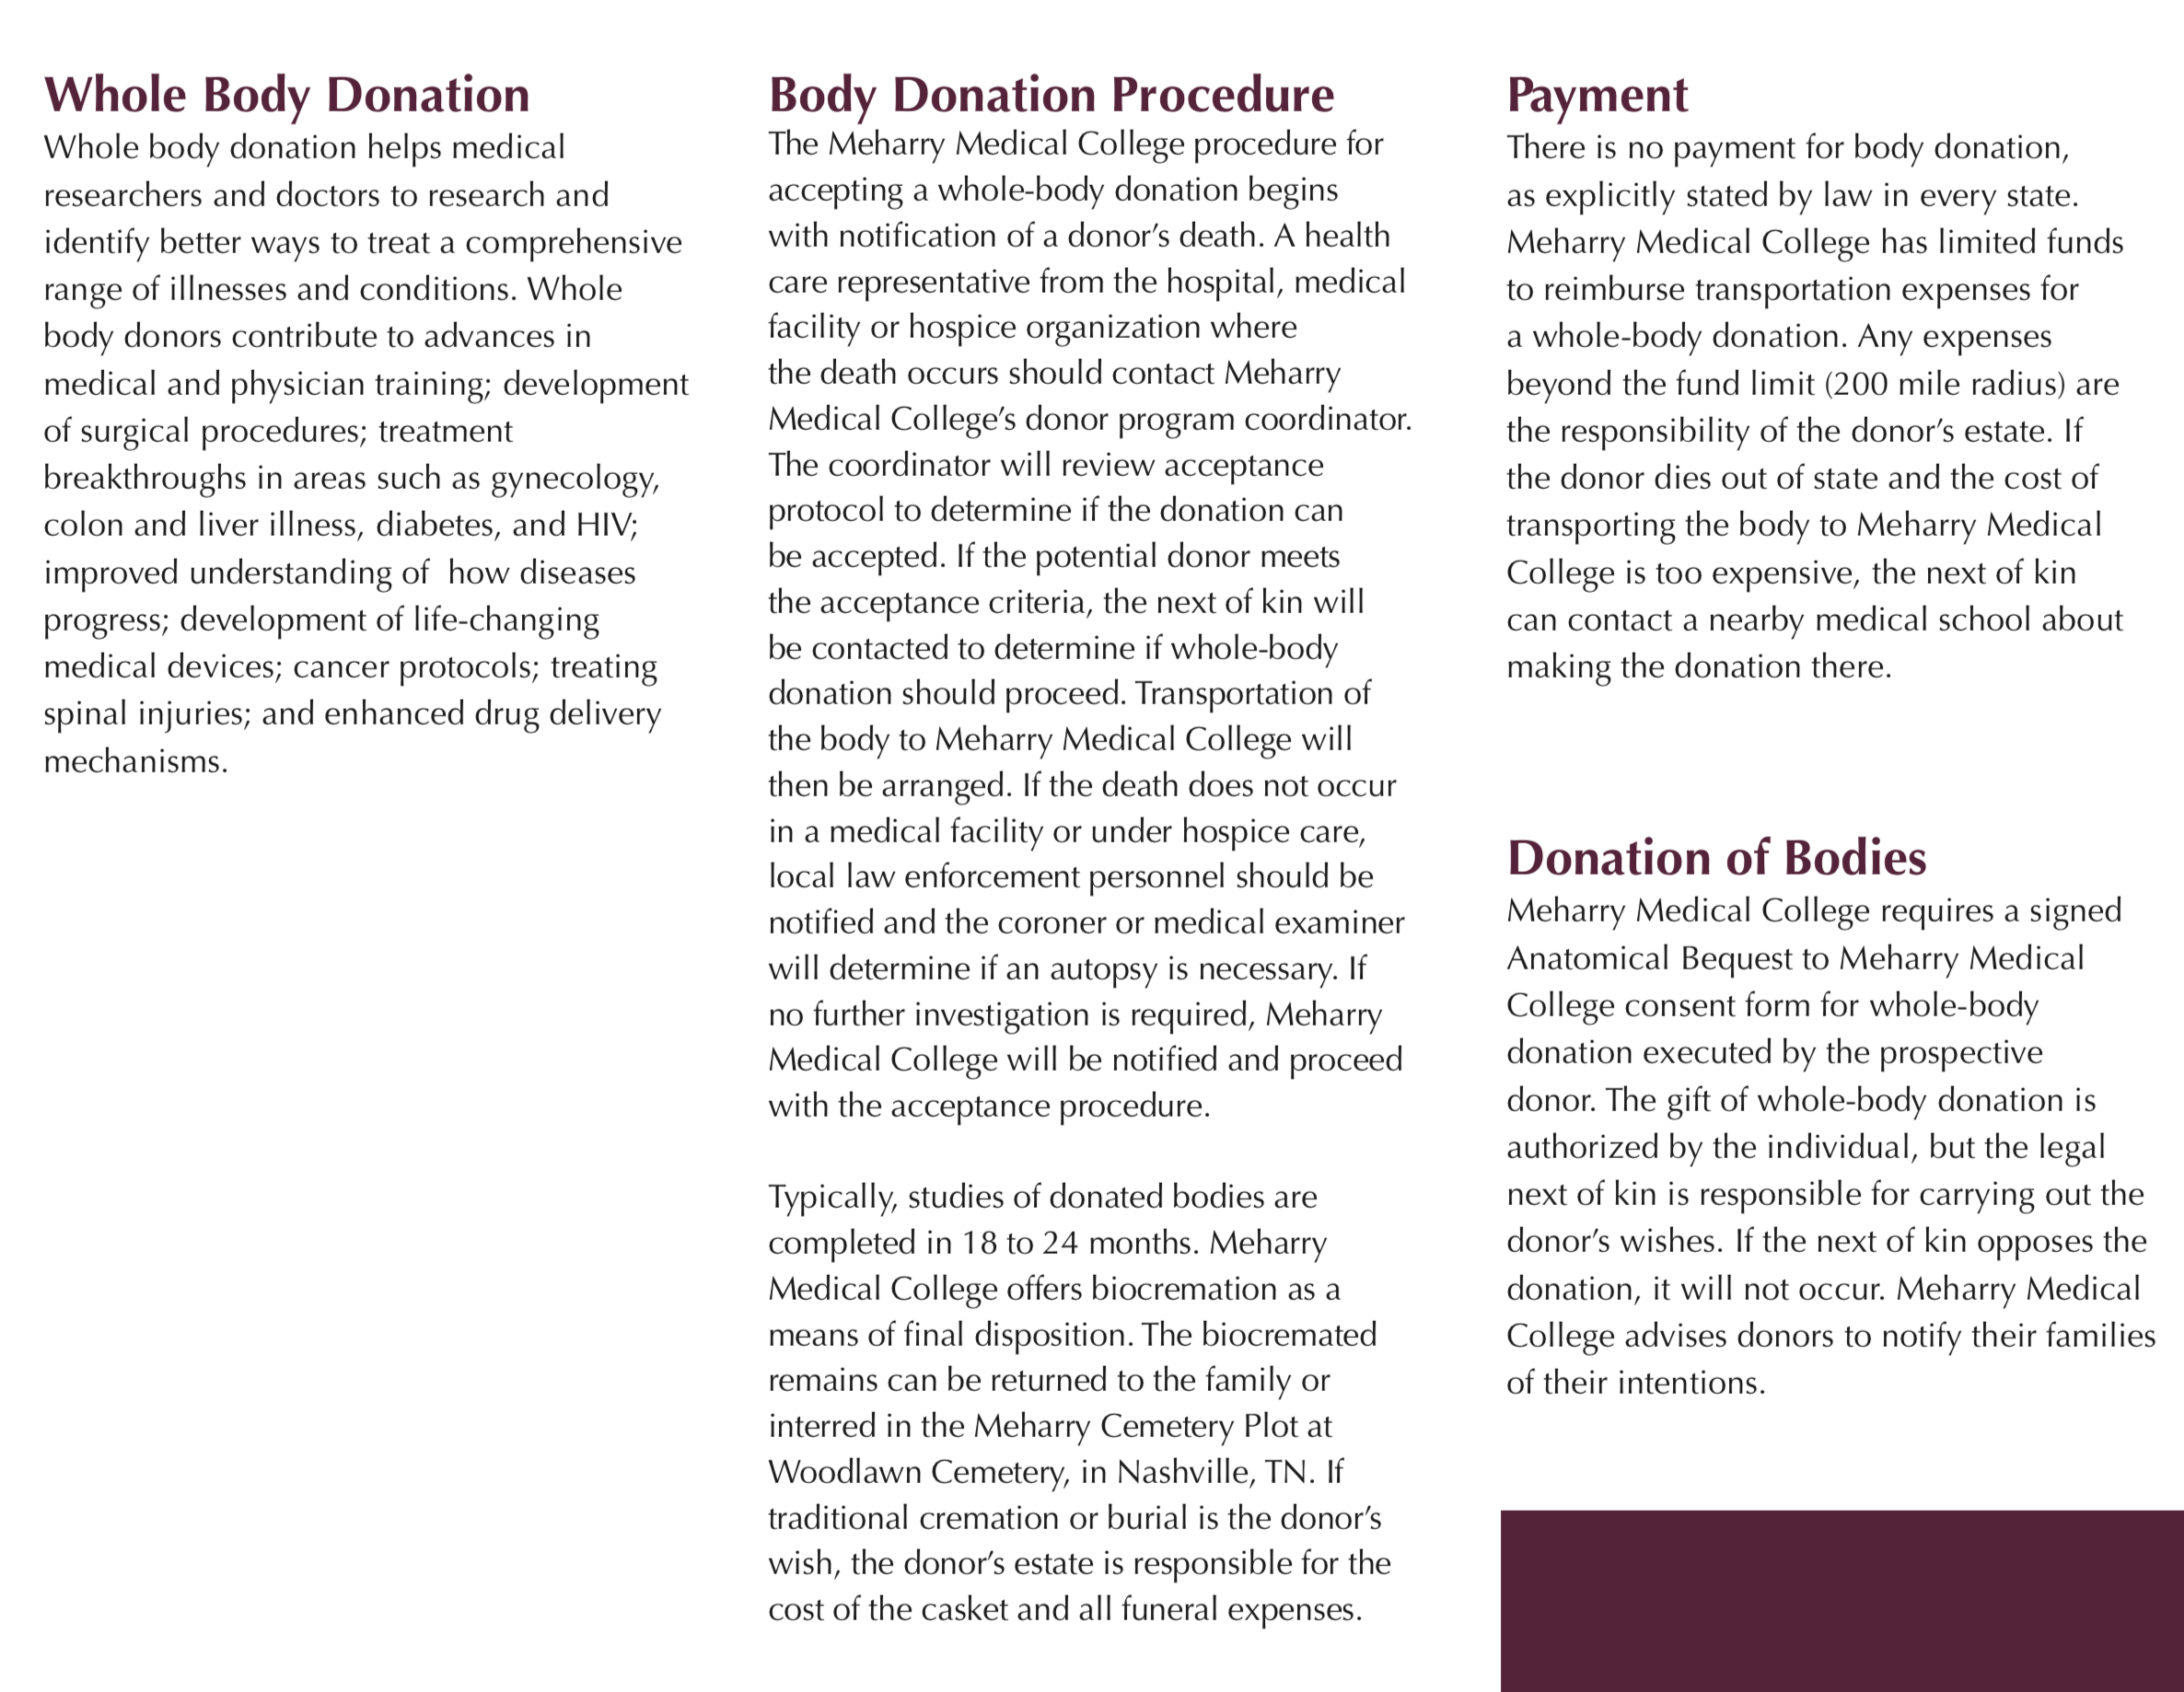 anatomical donation program brochure part 2